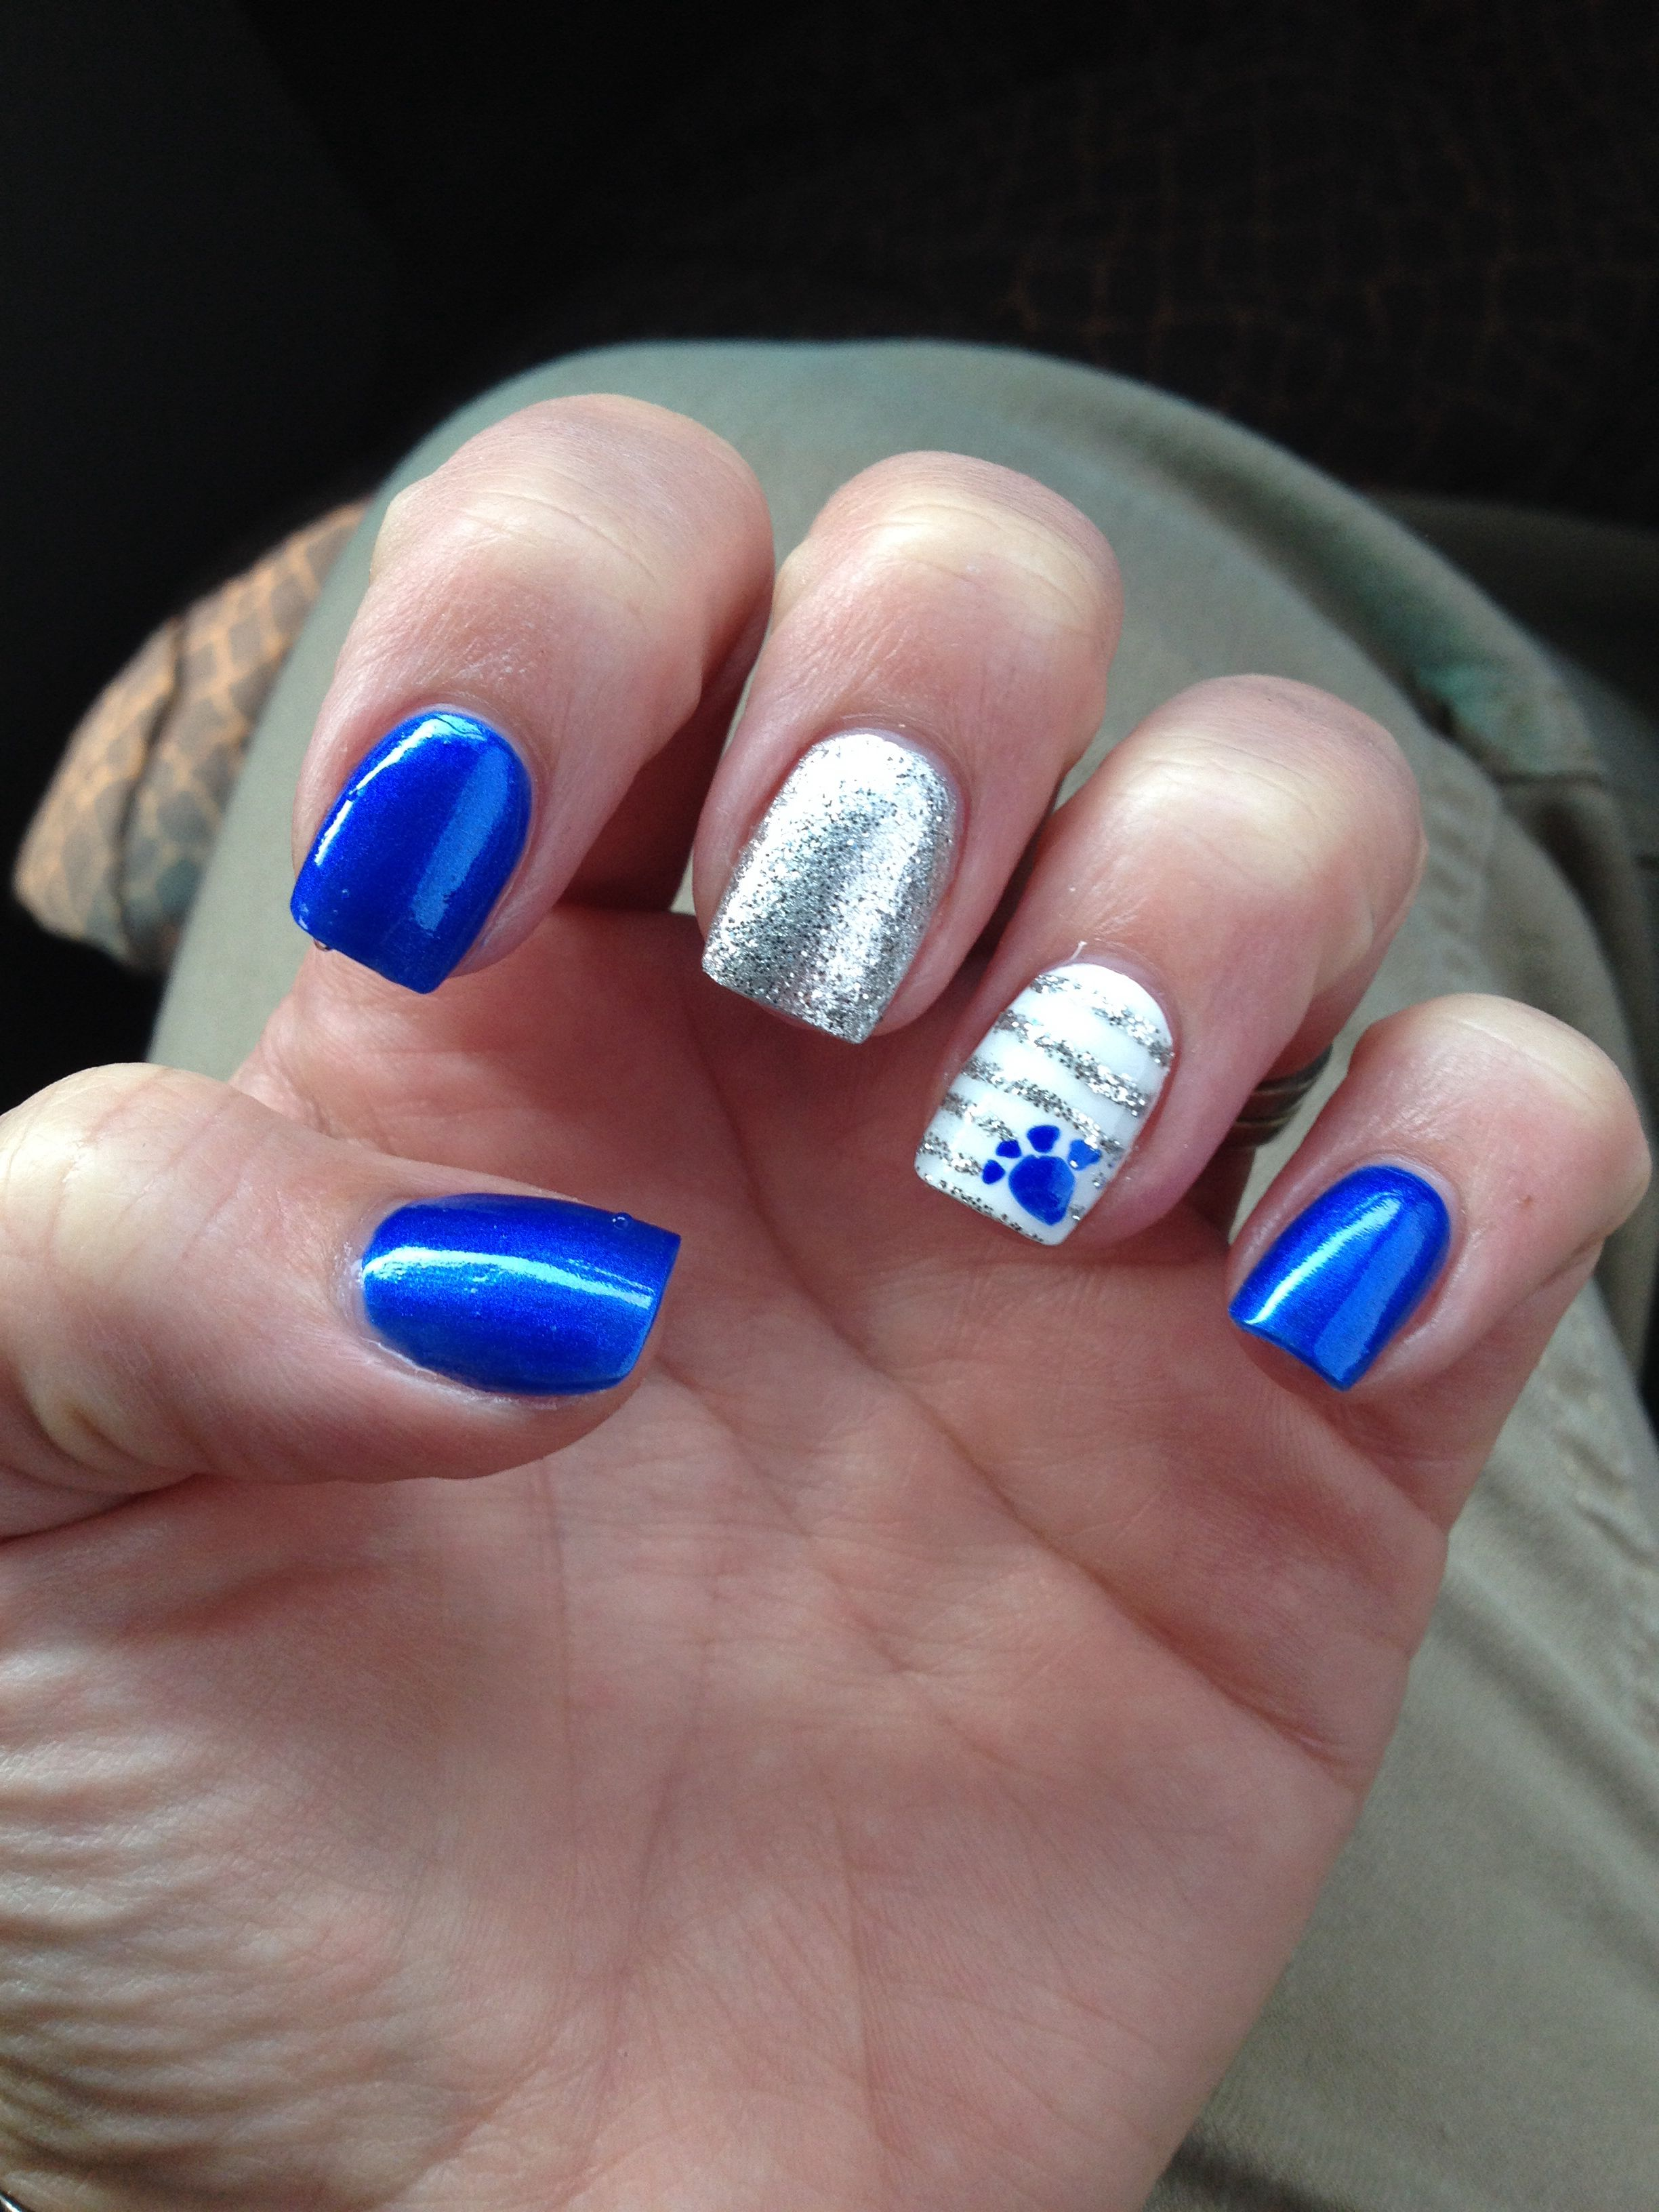 University Of Kentucky Manicure Football Nail Art Baseball Nails Designs